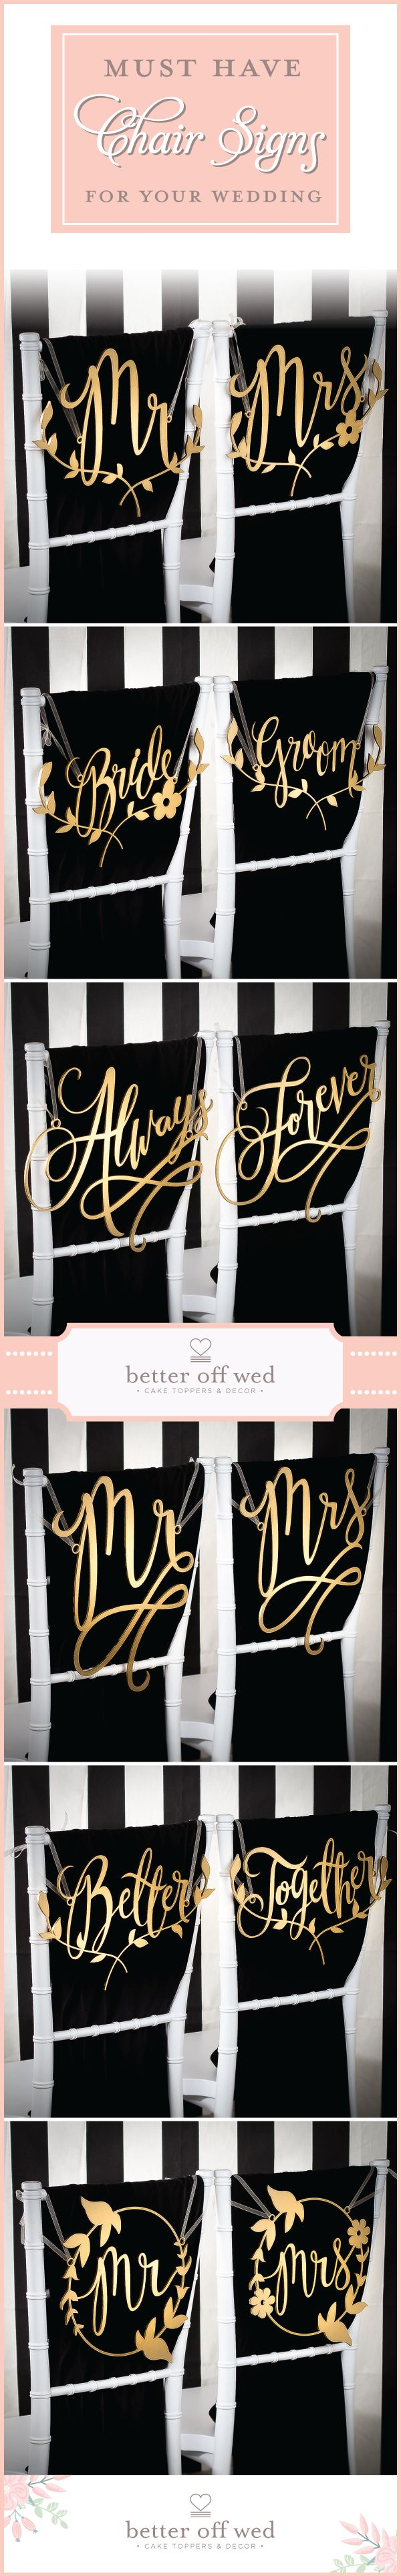 Wedding Chair Signs Decoration - Mr and Mrs - Joyful